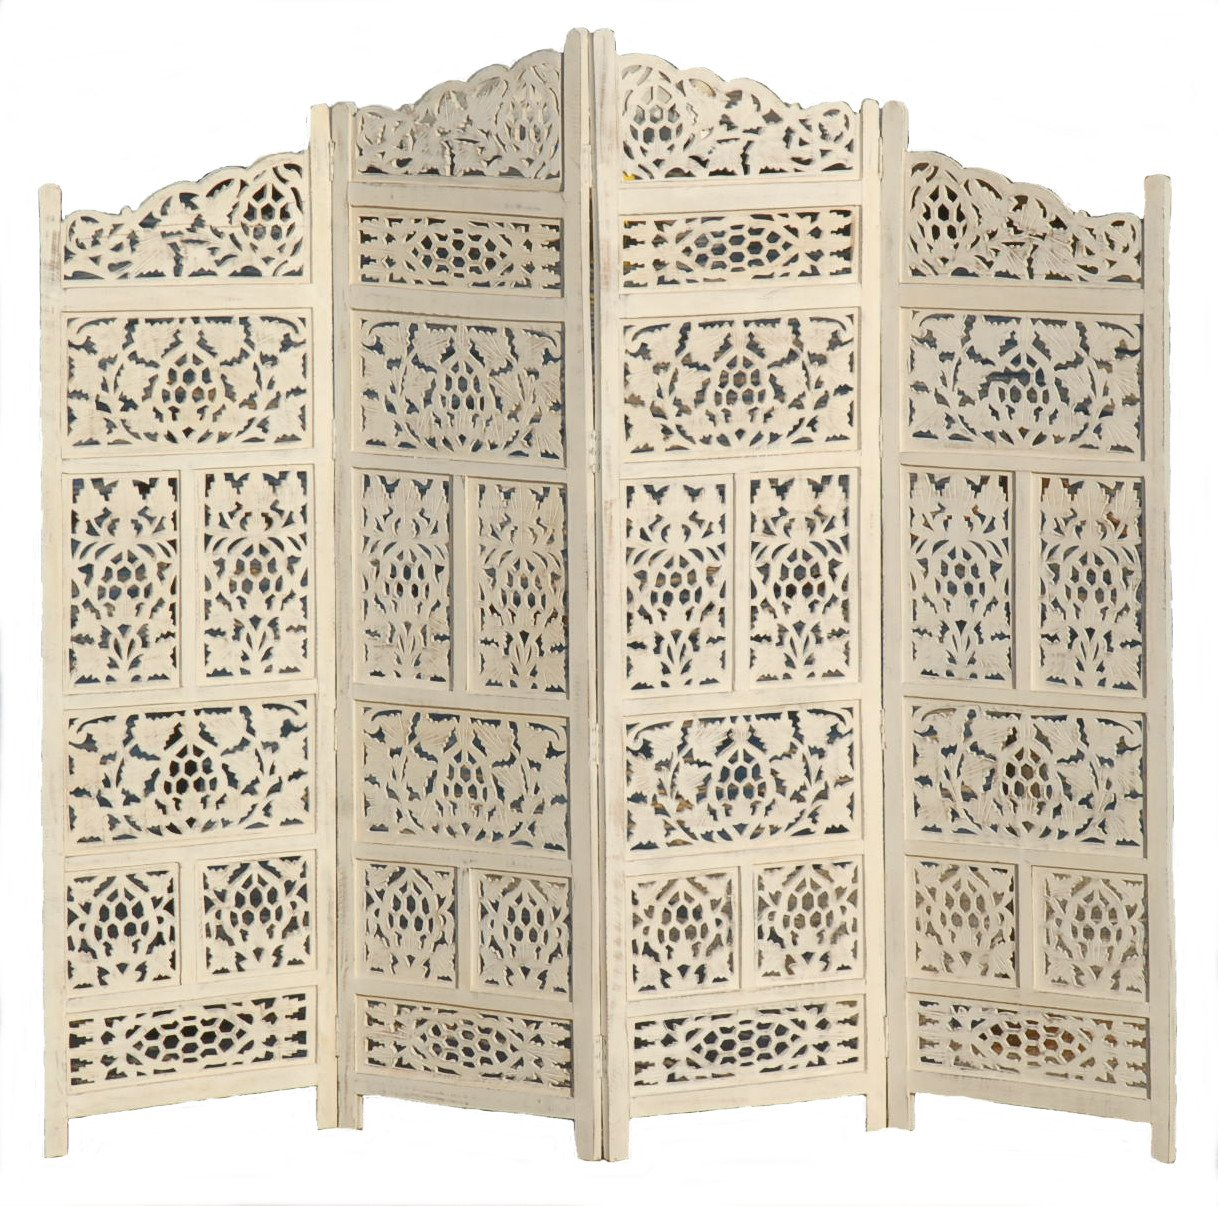 11IMPORTEXPORT.COM 4 PANEL SCREEN ROOM DIVIDER PARAVENT 202 CM WIDE OPEN DESIGN INDIAN HAND CARVED WOODEN SW